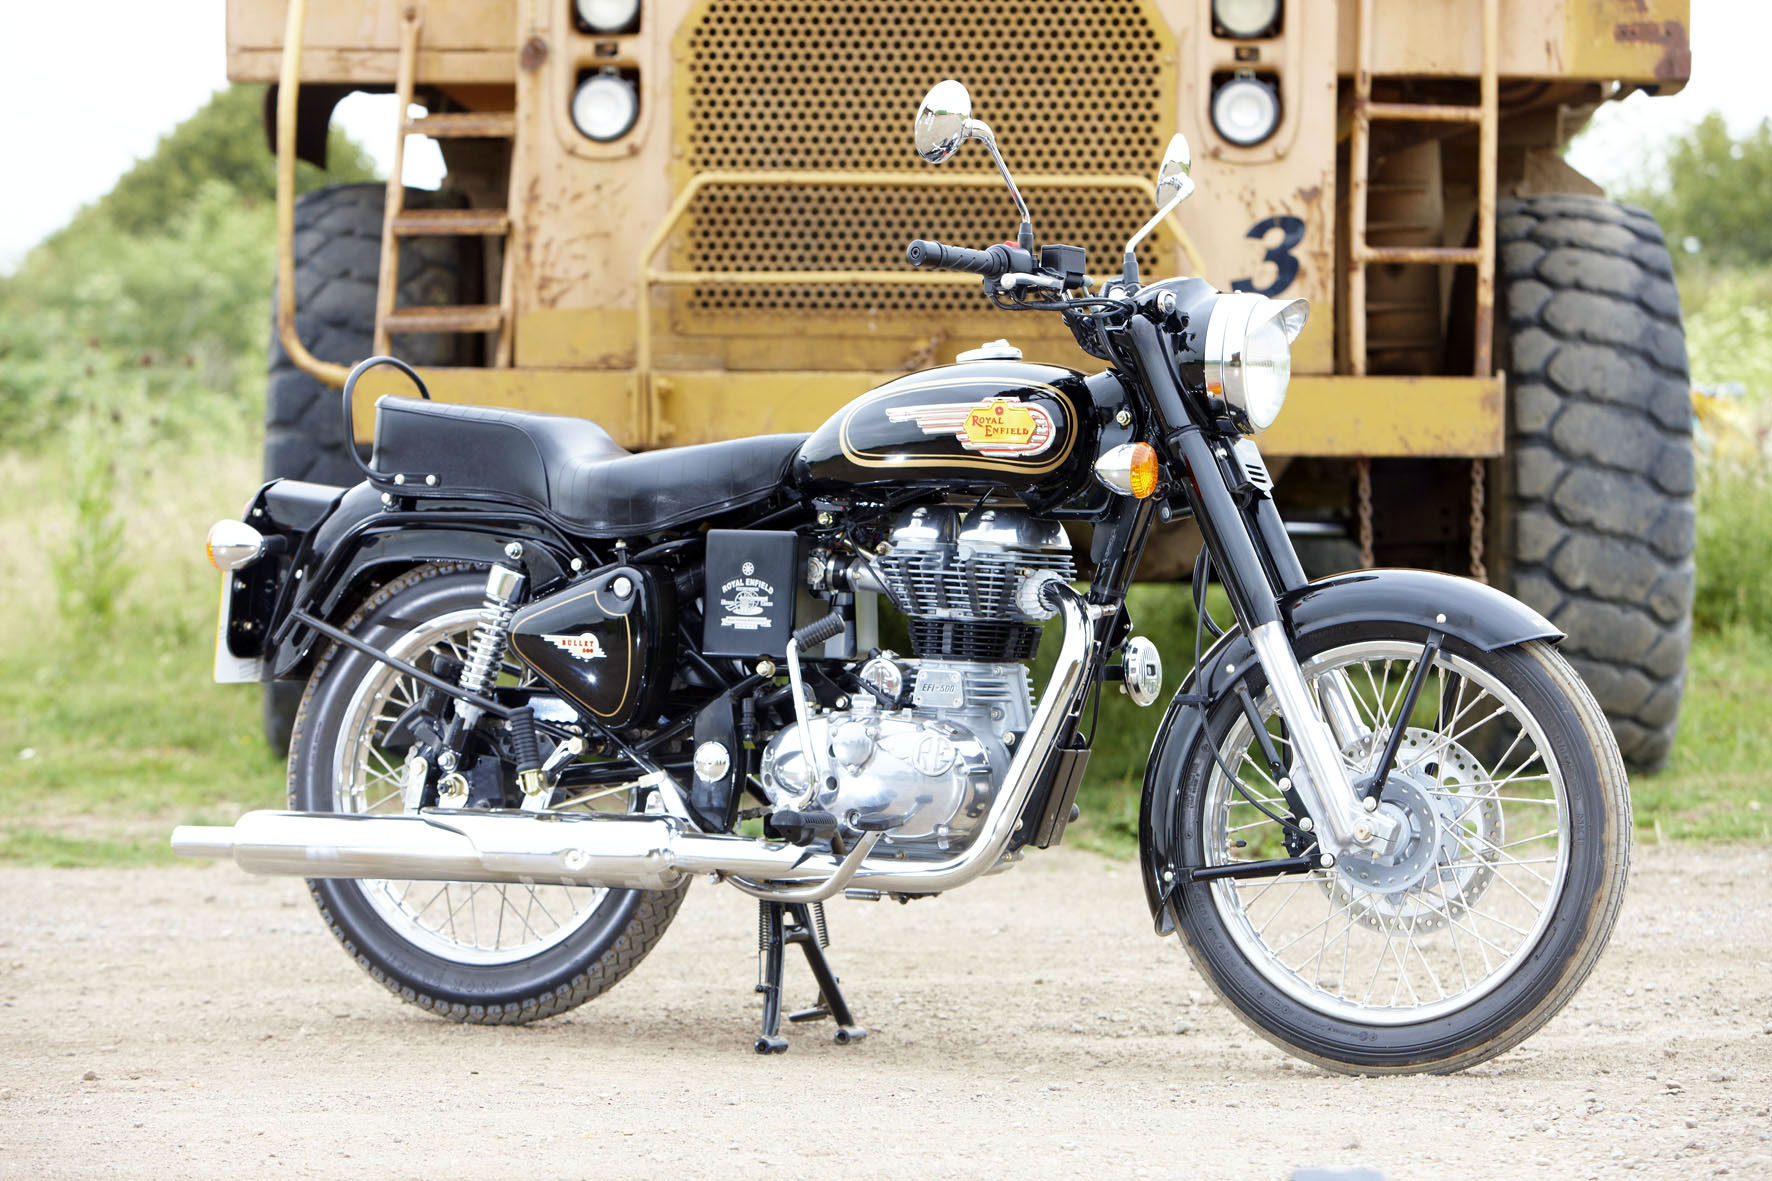 2013 royal enfield bullet 500 b5 efi review. Black Bedroom Furniture Sets. Home Design Ideas